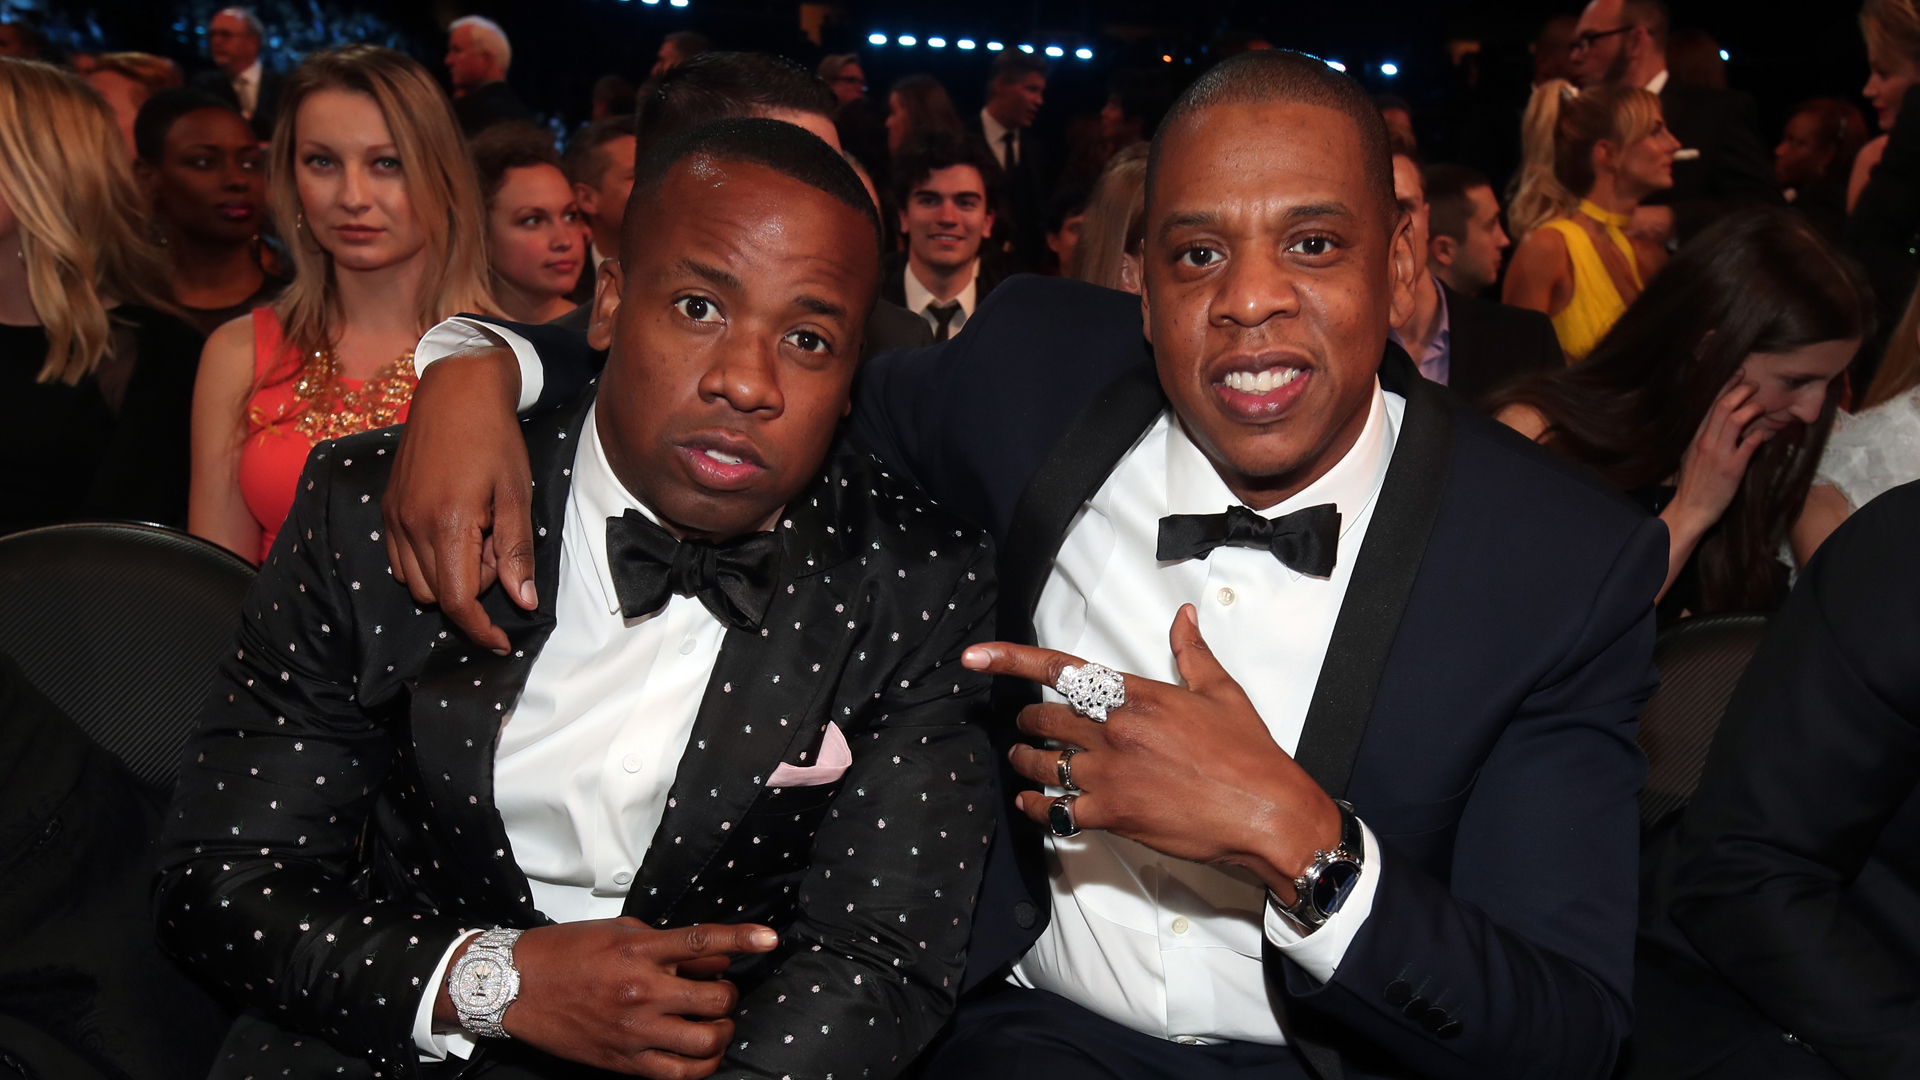 Artists Yo Gotti and Jay-Z pose during the 59th GRAMMY Awards at Staples Center on Feb. 12, 2017, in Los Angeles, California. (Credit: Christopher Polk/Getty Images for NARAS)